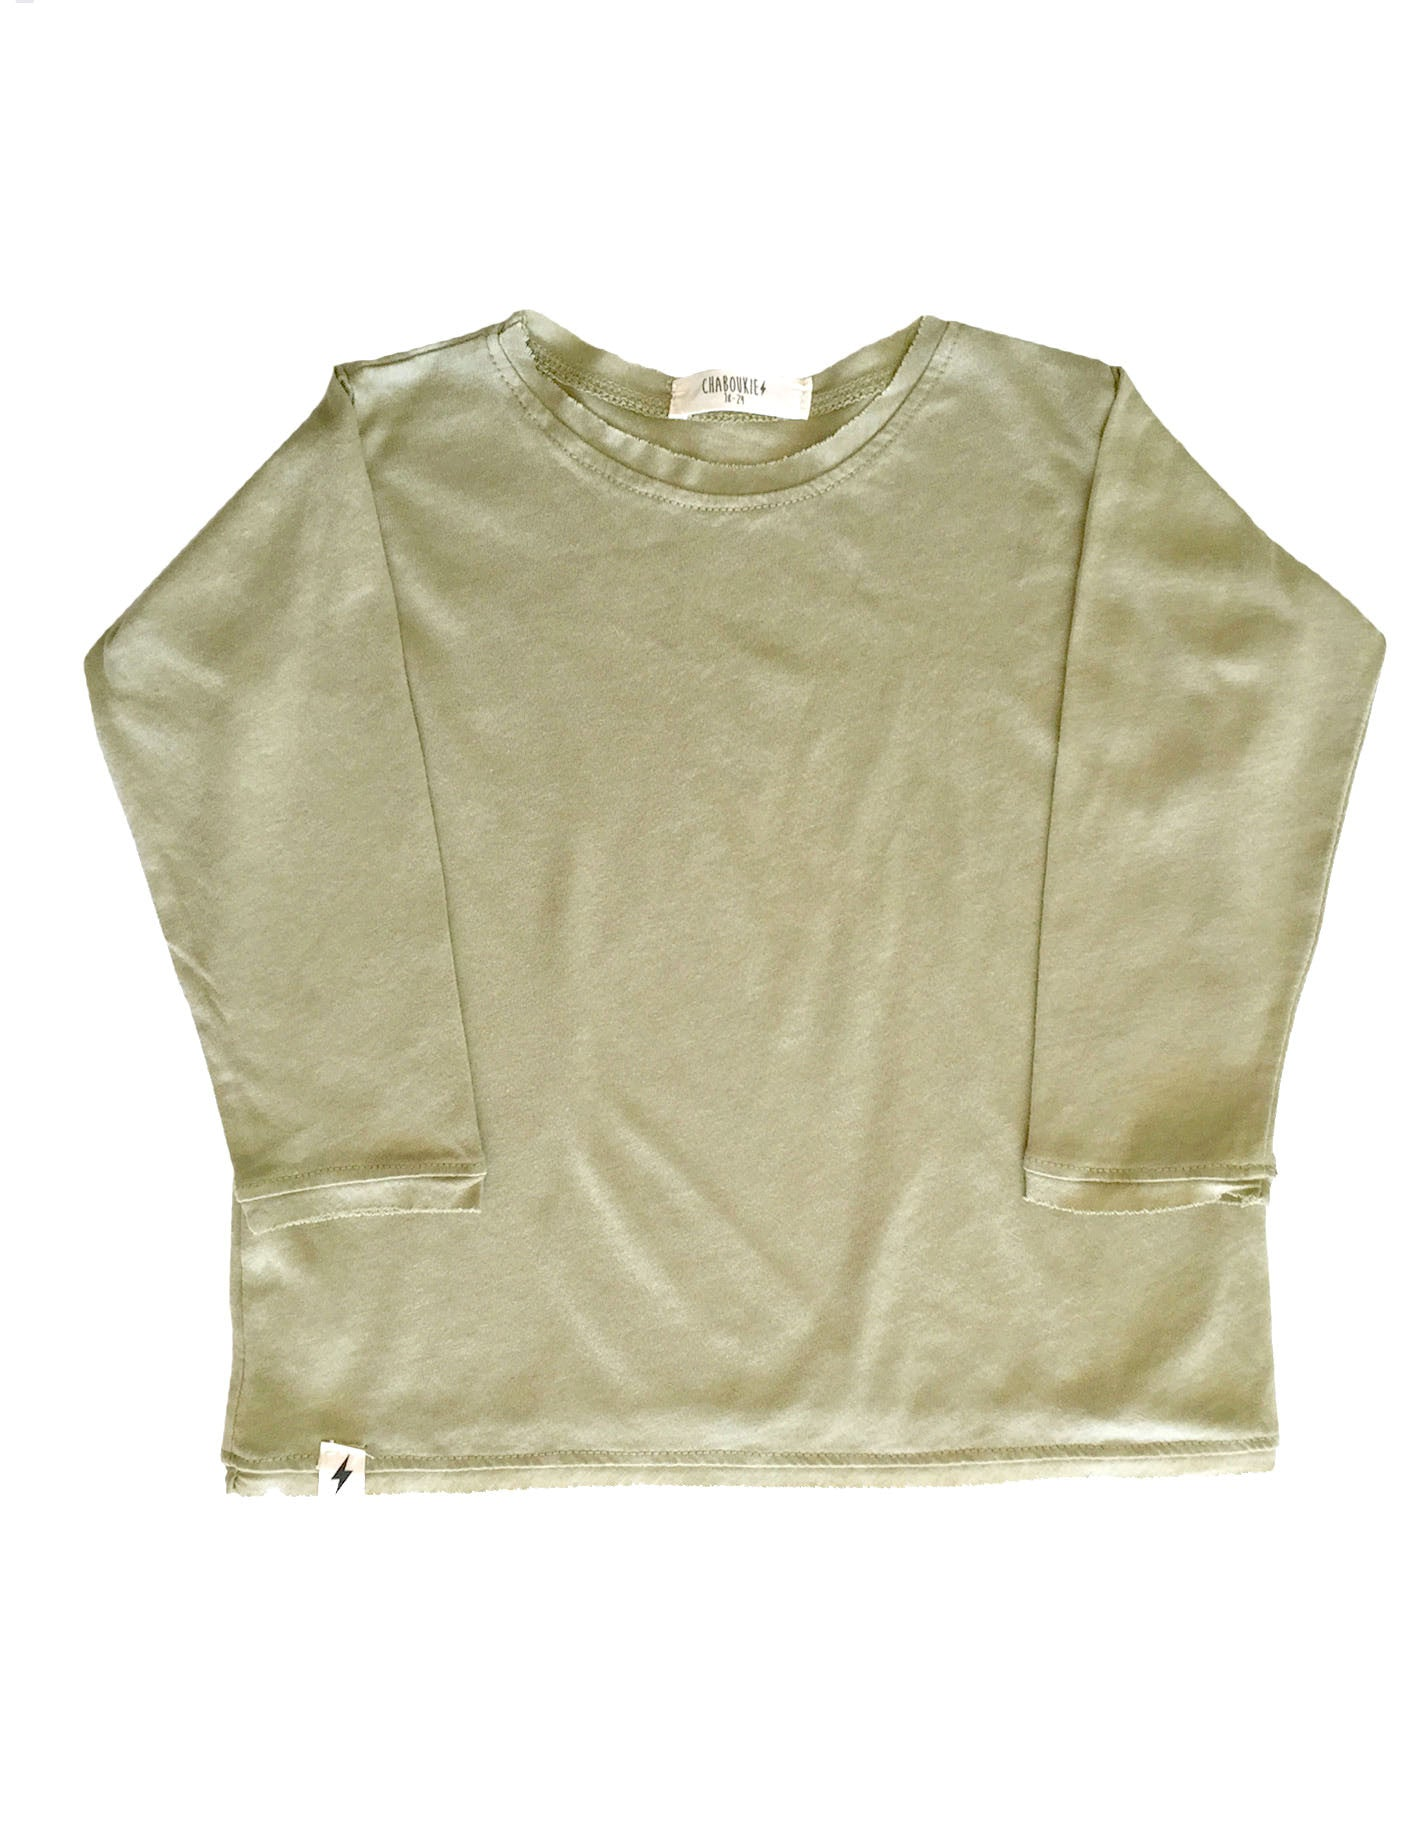 Long Sleeve t-shirt in Moss